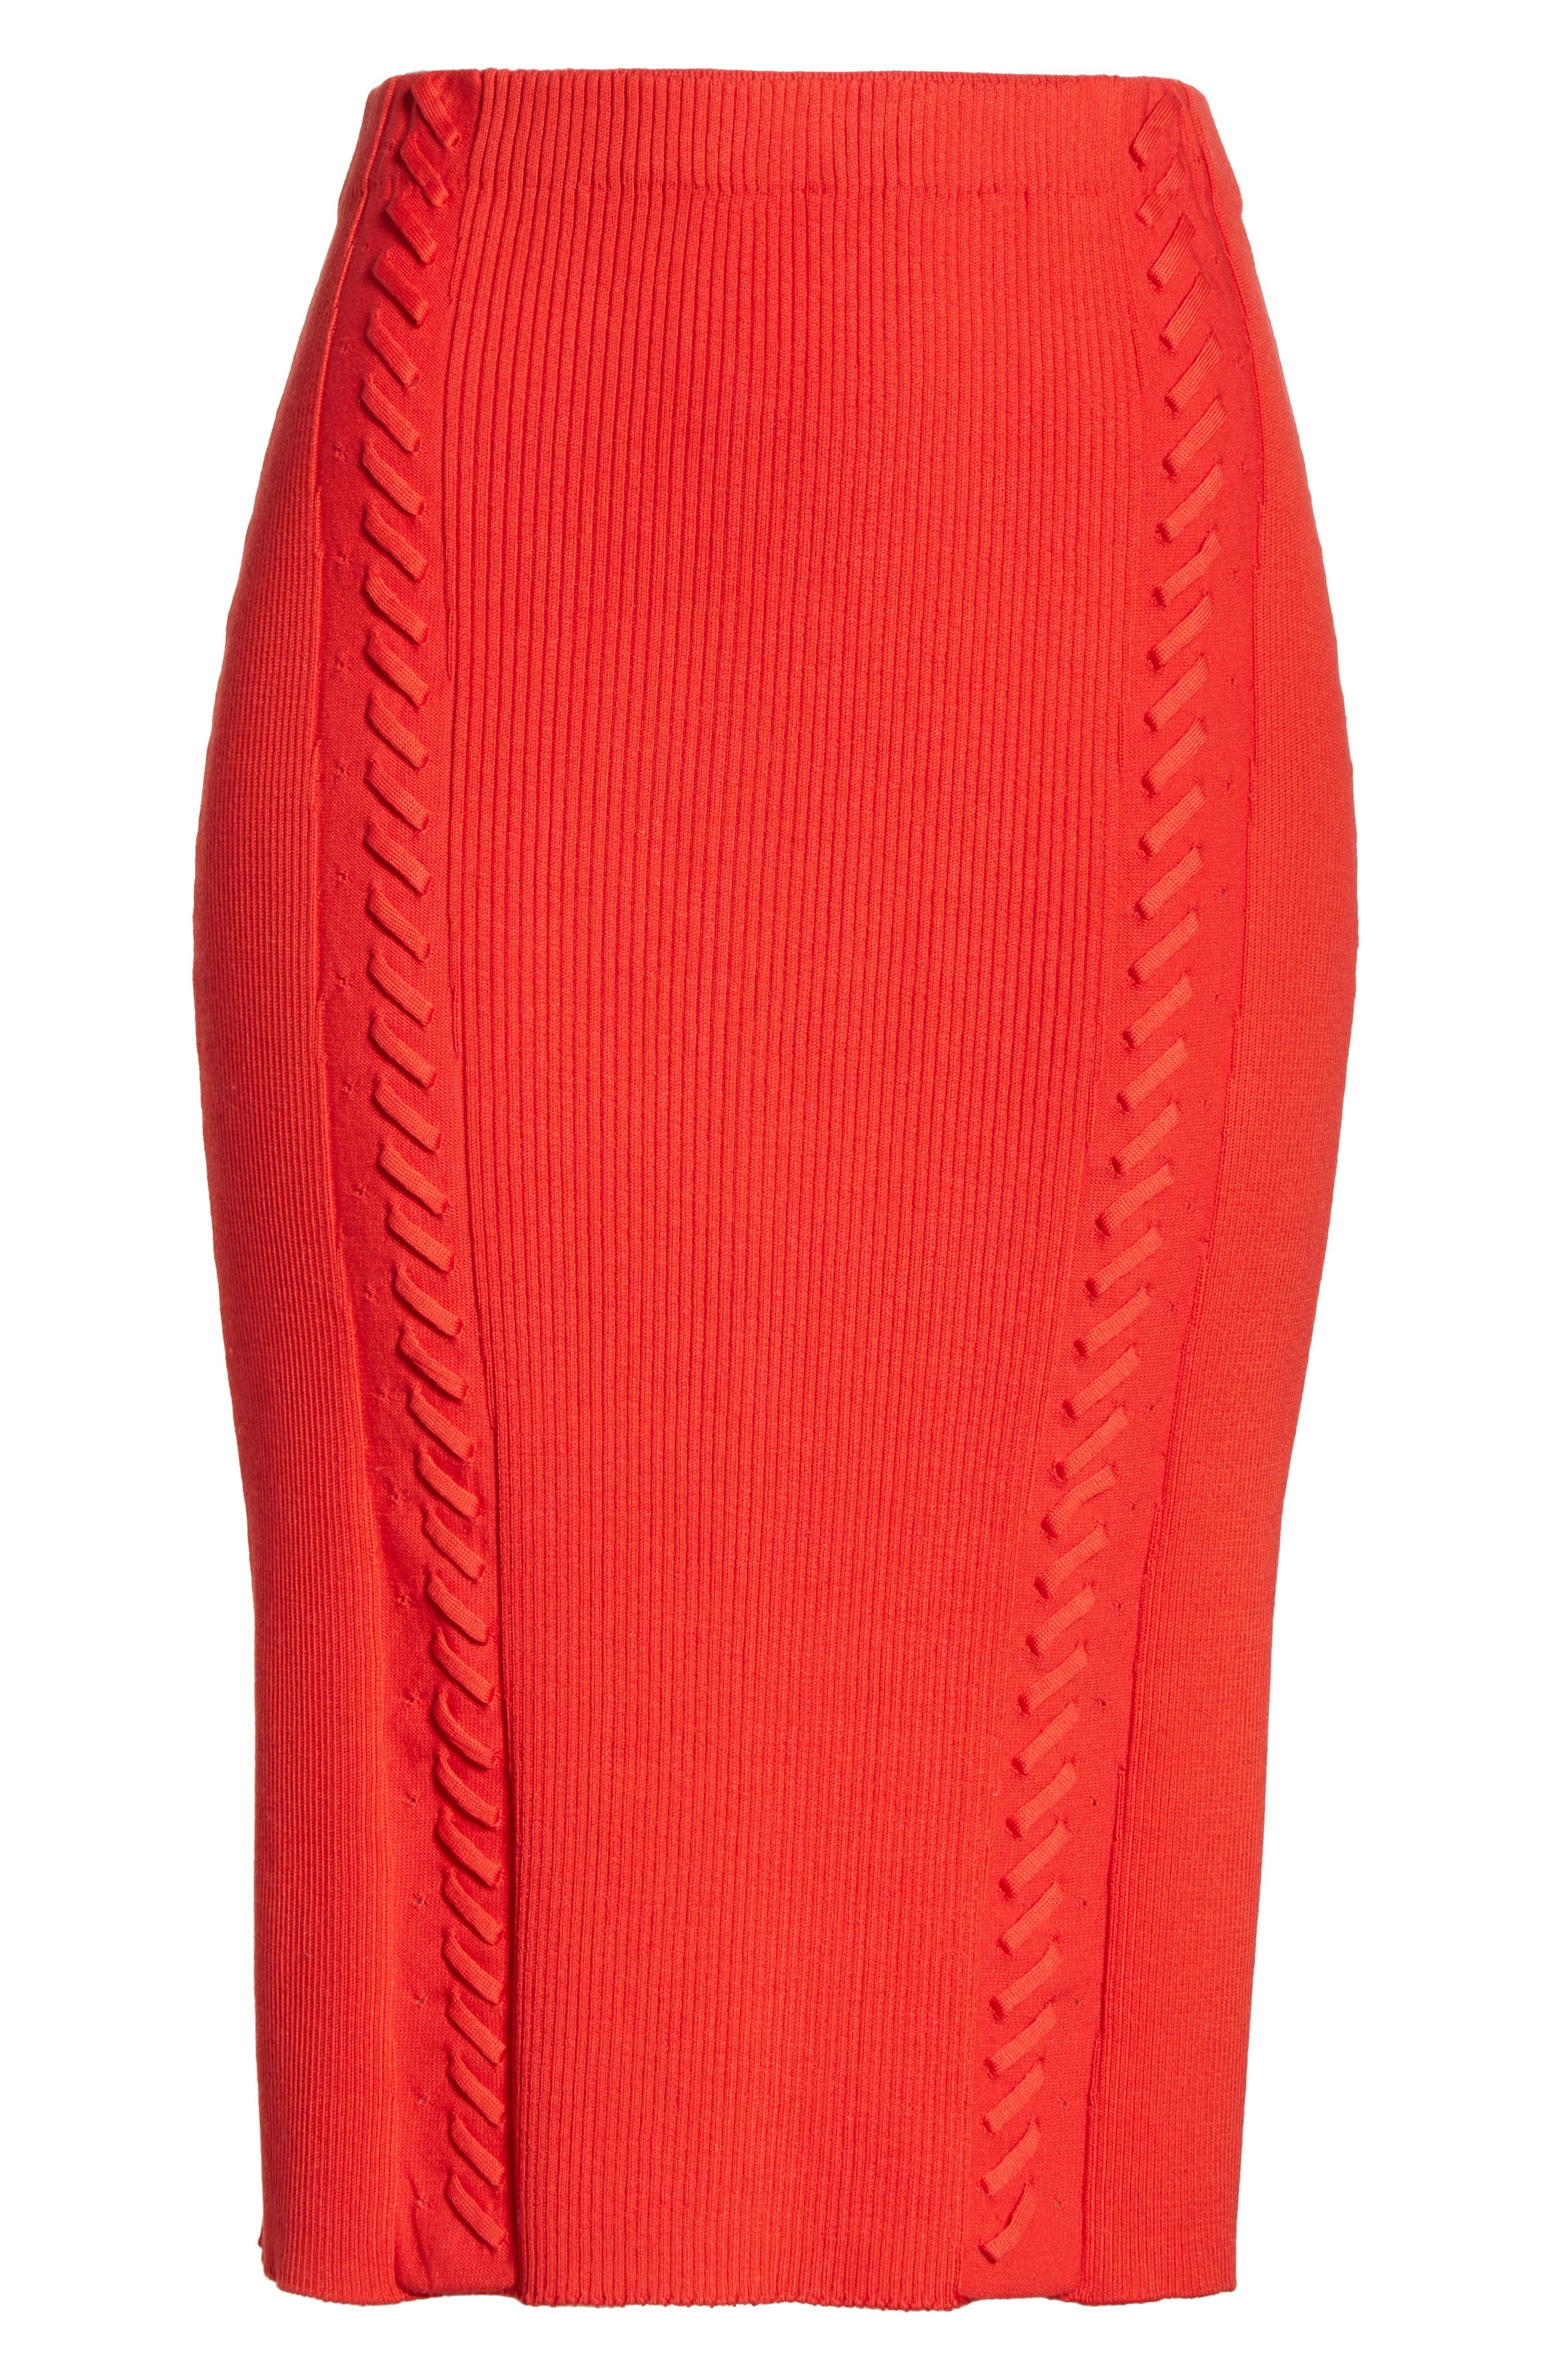 Brandy Whipstitch Pencil Skirt,                             Alternate thumbnail 6, color,                             600